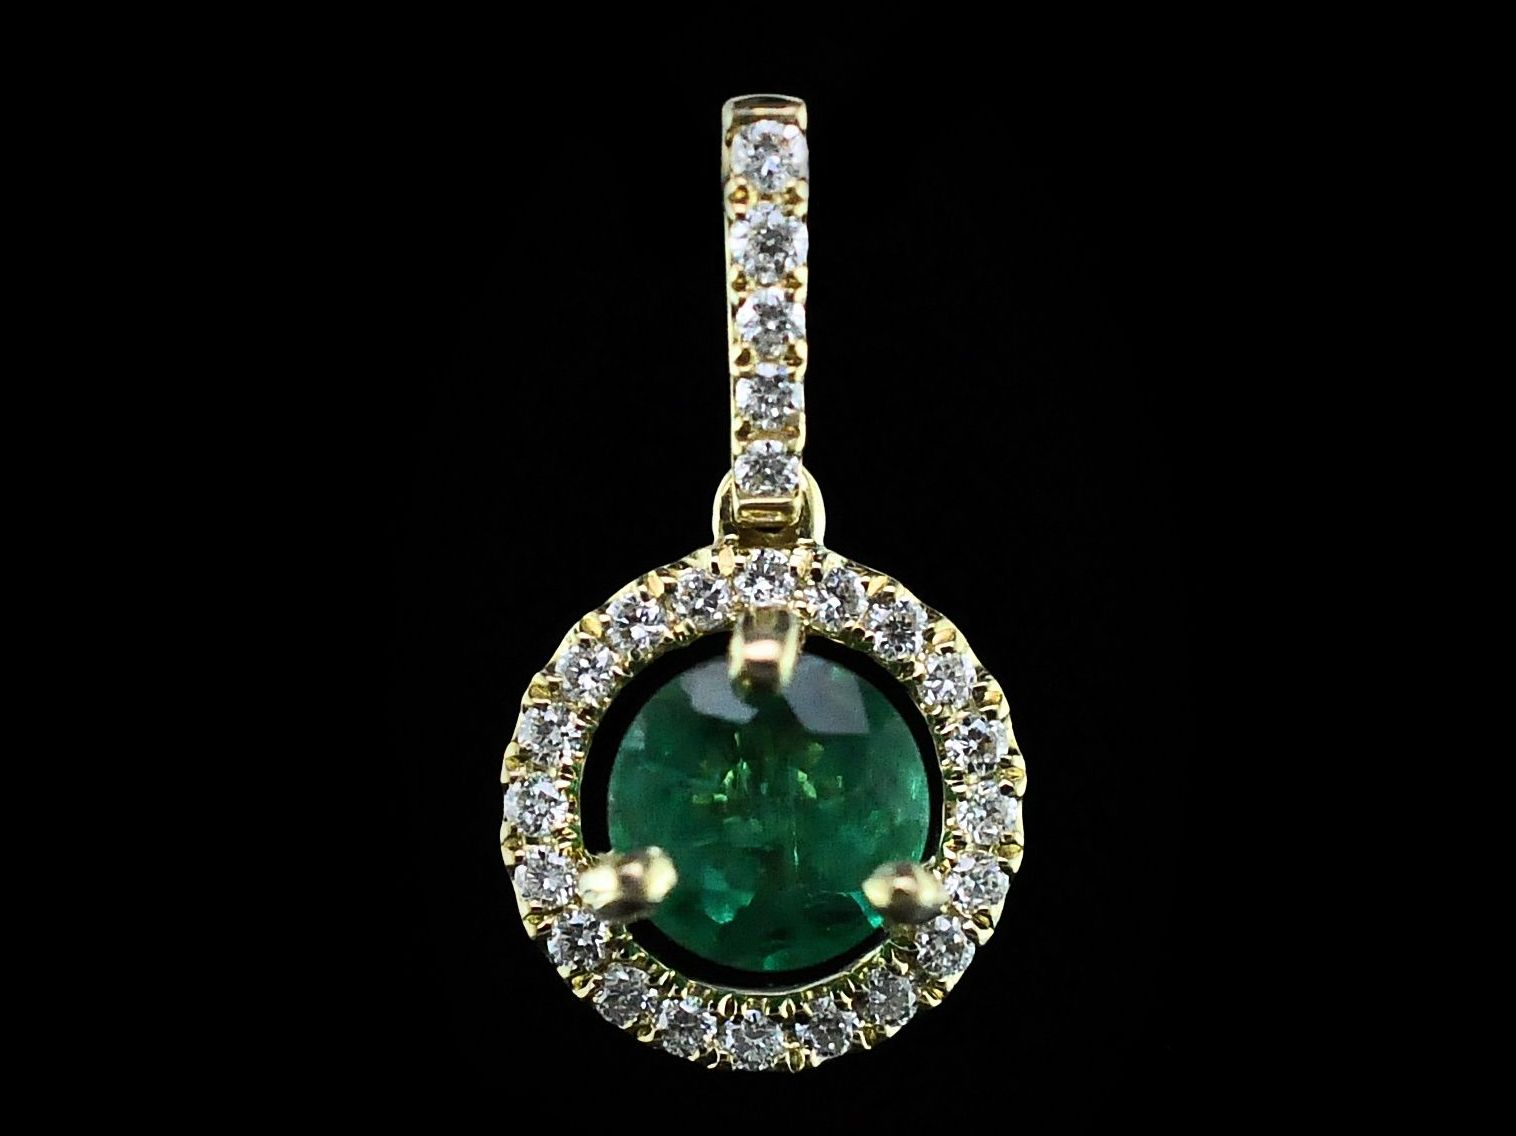 Colored Stone Pendants - Emerald and Diamond Halo Pendant